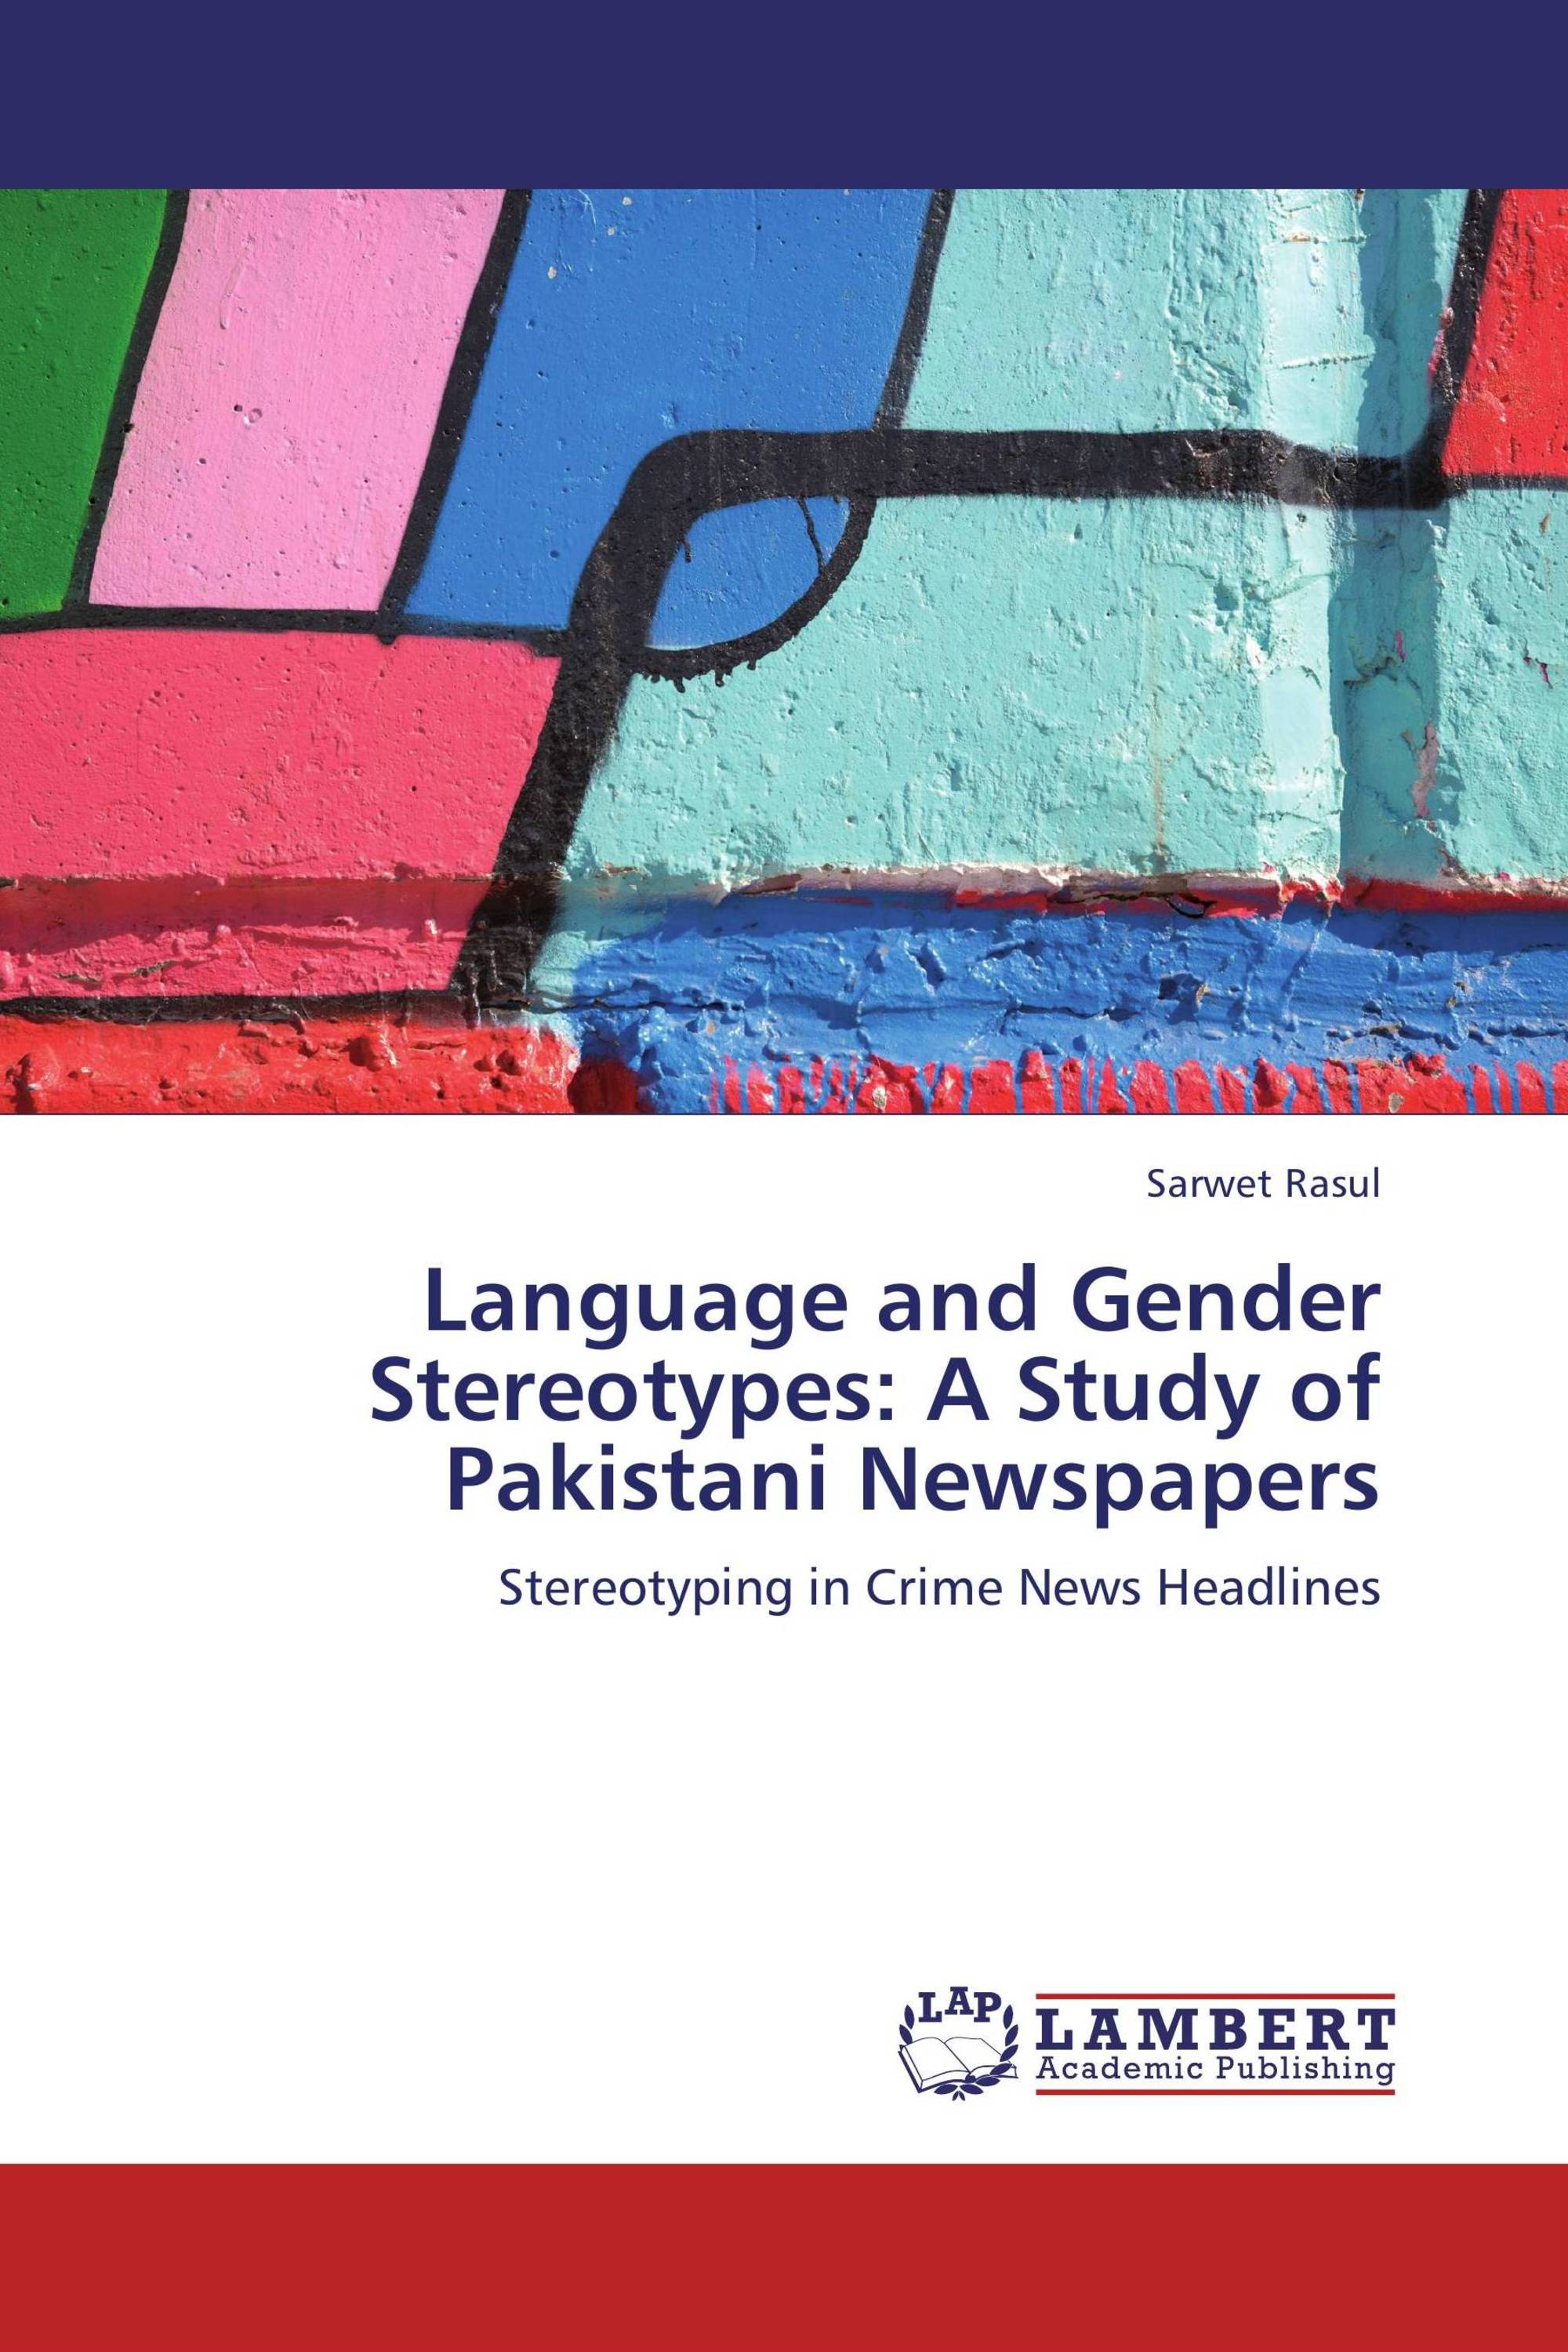 thesis on language and gender Language choice and language use in computer mediated communication: code switching and script switching in libyan arabic attitudes, exposure, and the english pronunciation of dutch learners a regional comparison of listener perception of speaker ethnicity via the non-verbal communication of laughter.